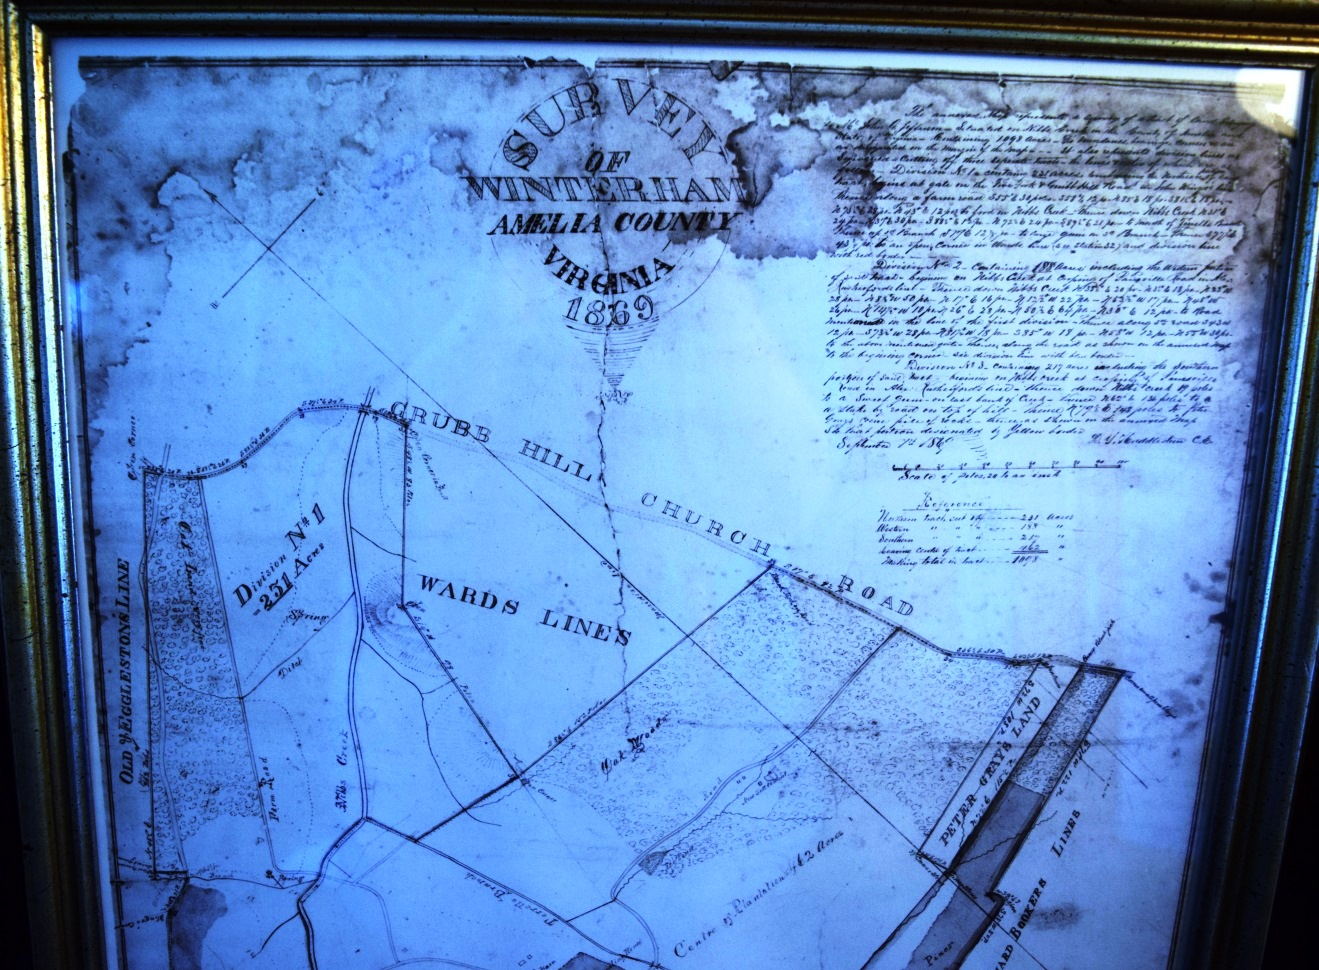 winterham single guys Notes on the state of virginia by thomas jefferson  yet few men have  considerable quantities of black lead are taken occasionally for use from winterham,.